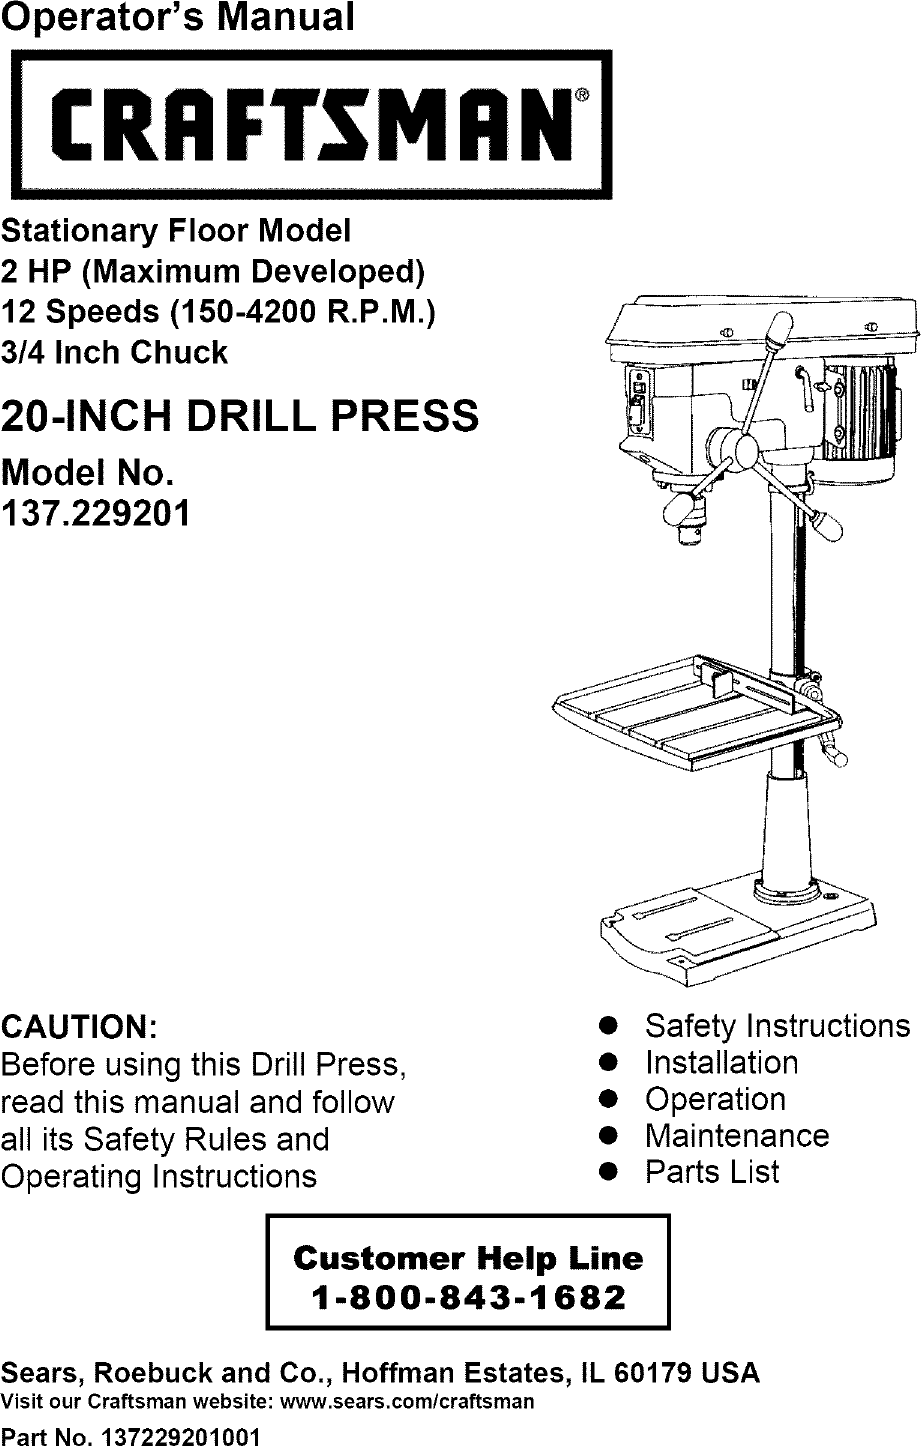 hight resolution of craftsman 137229200 user manual 20 drill press manuals and guides l0803566